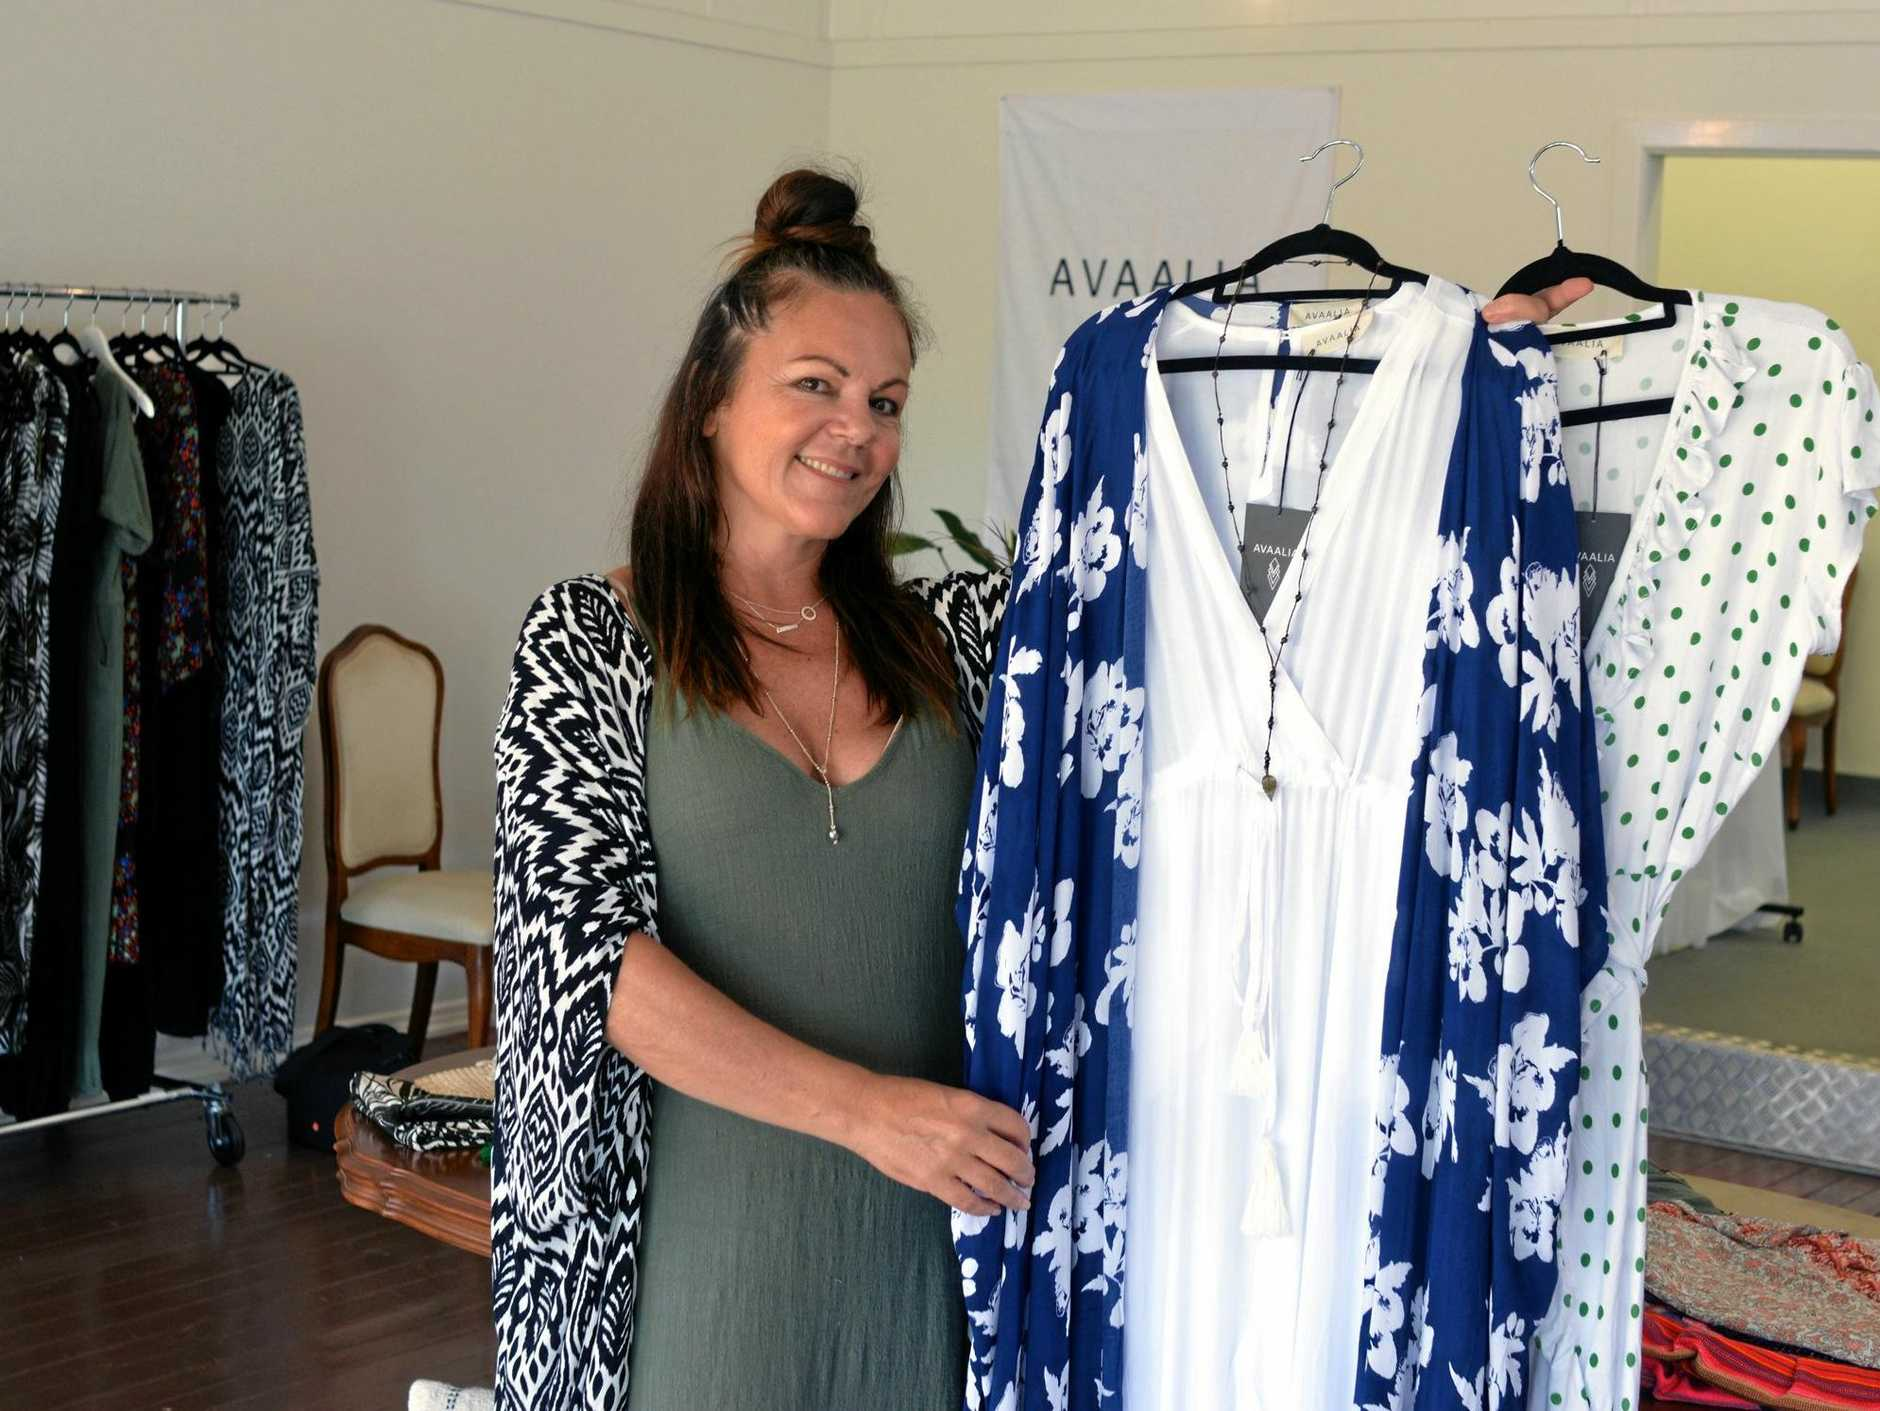 OPEN FOR BUSINESS: New shop, Clothing shop Avaalia by local established designer Julianne Parsons popped up in Alstonville.